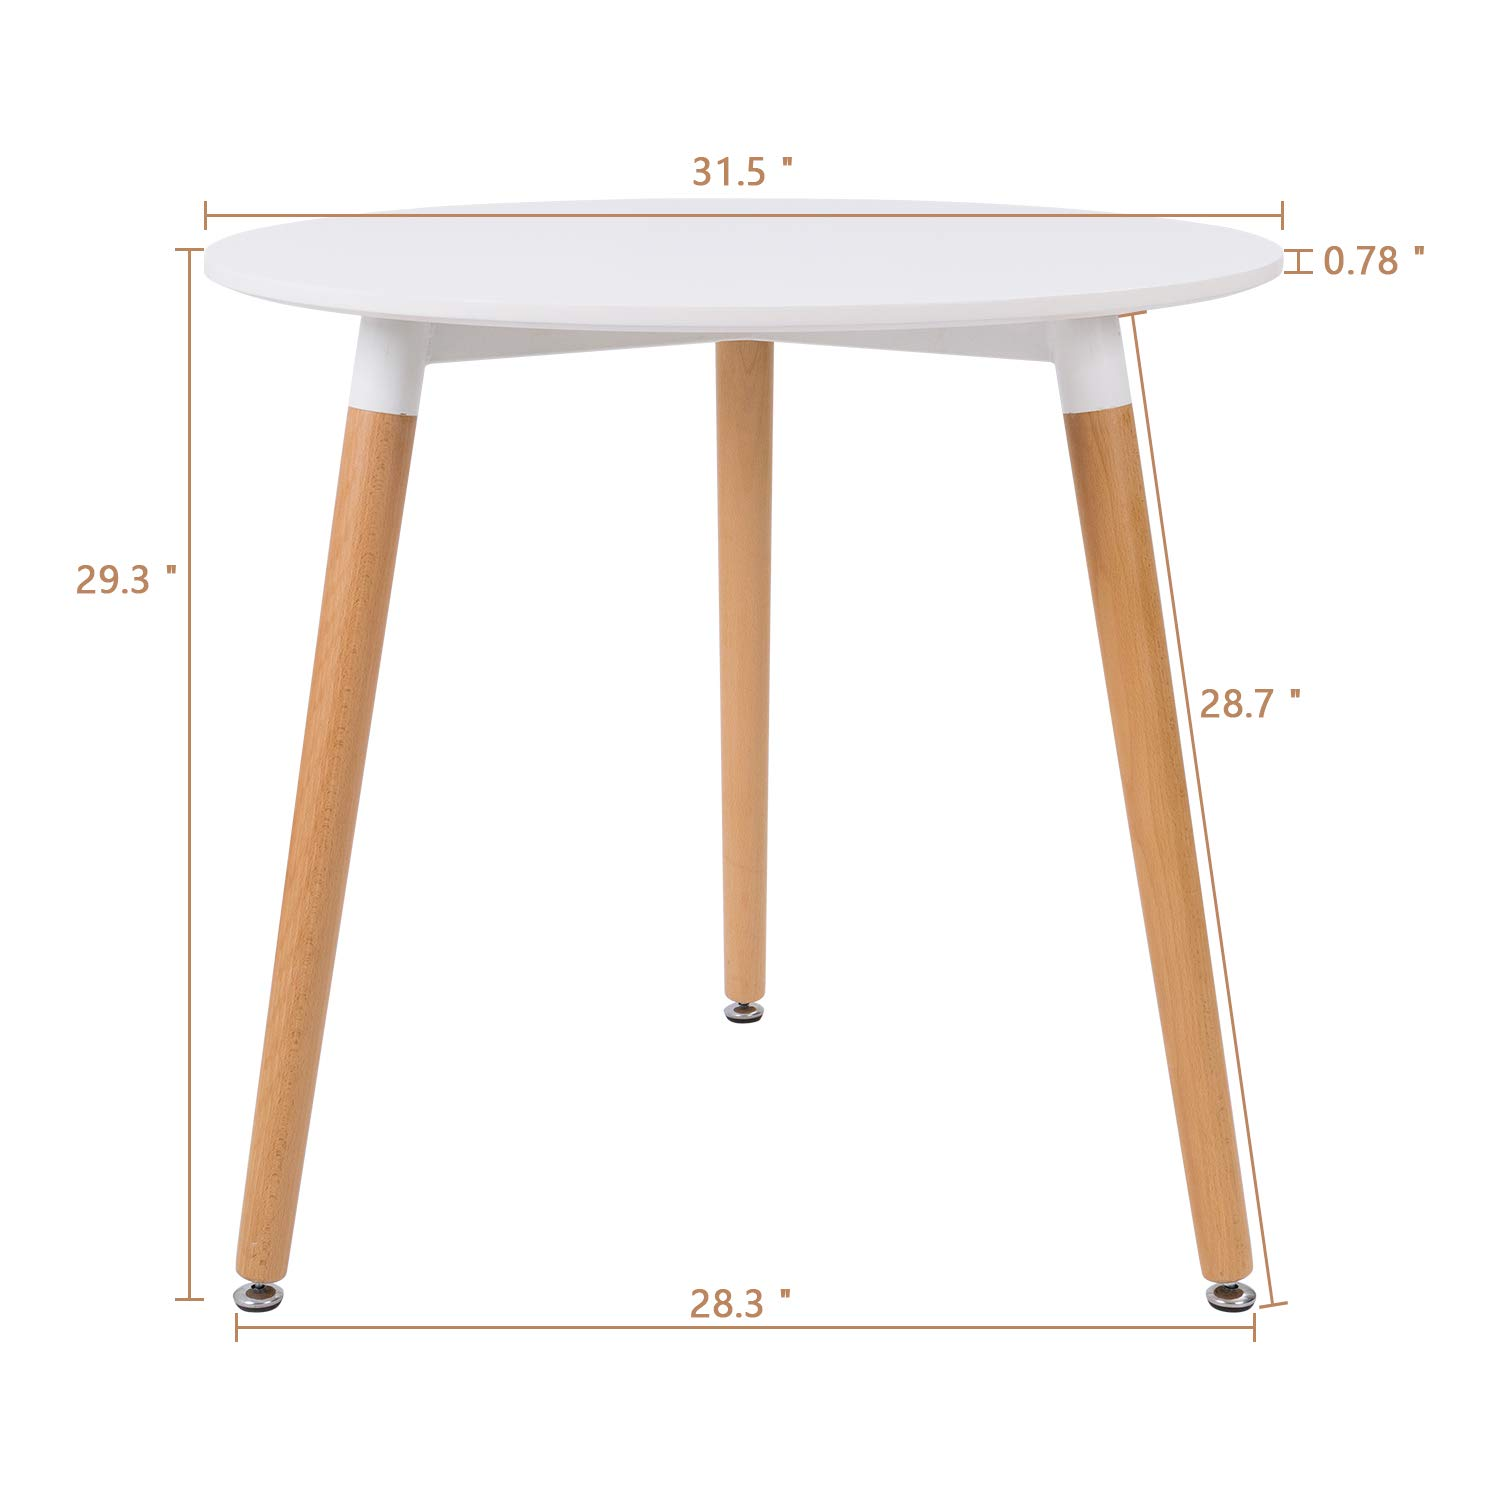 Furmax Kitchen Dining Table Modern Style Round Leisure Coffee Table,Office Coference Desk with Wood Legs for Kitchen Living Room (White) by Furmax (Image #5)